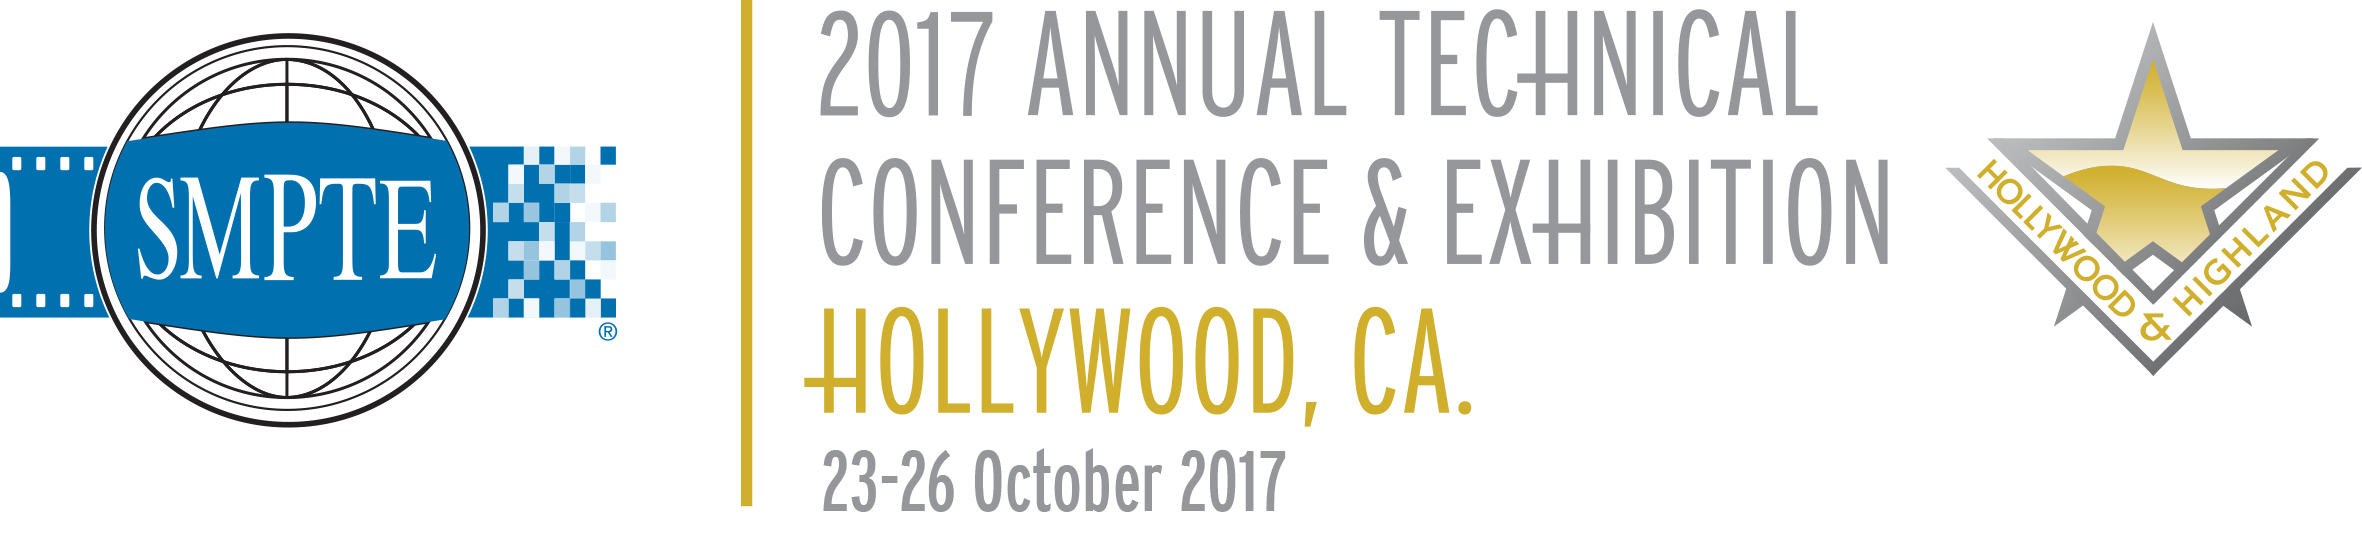 SMPTE 2017 Annual Technical Conference & Exhibition